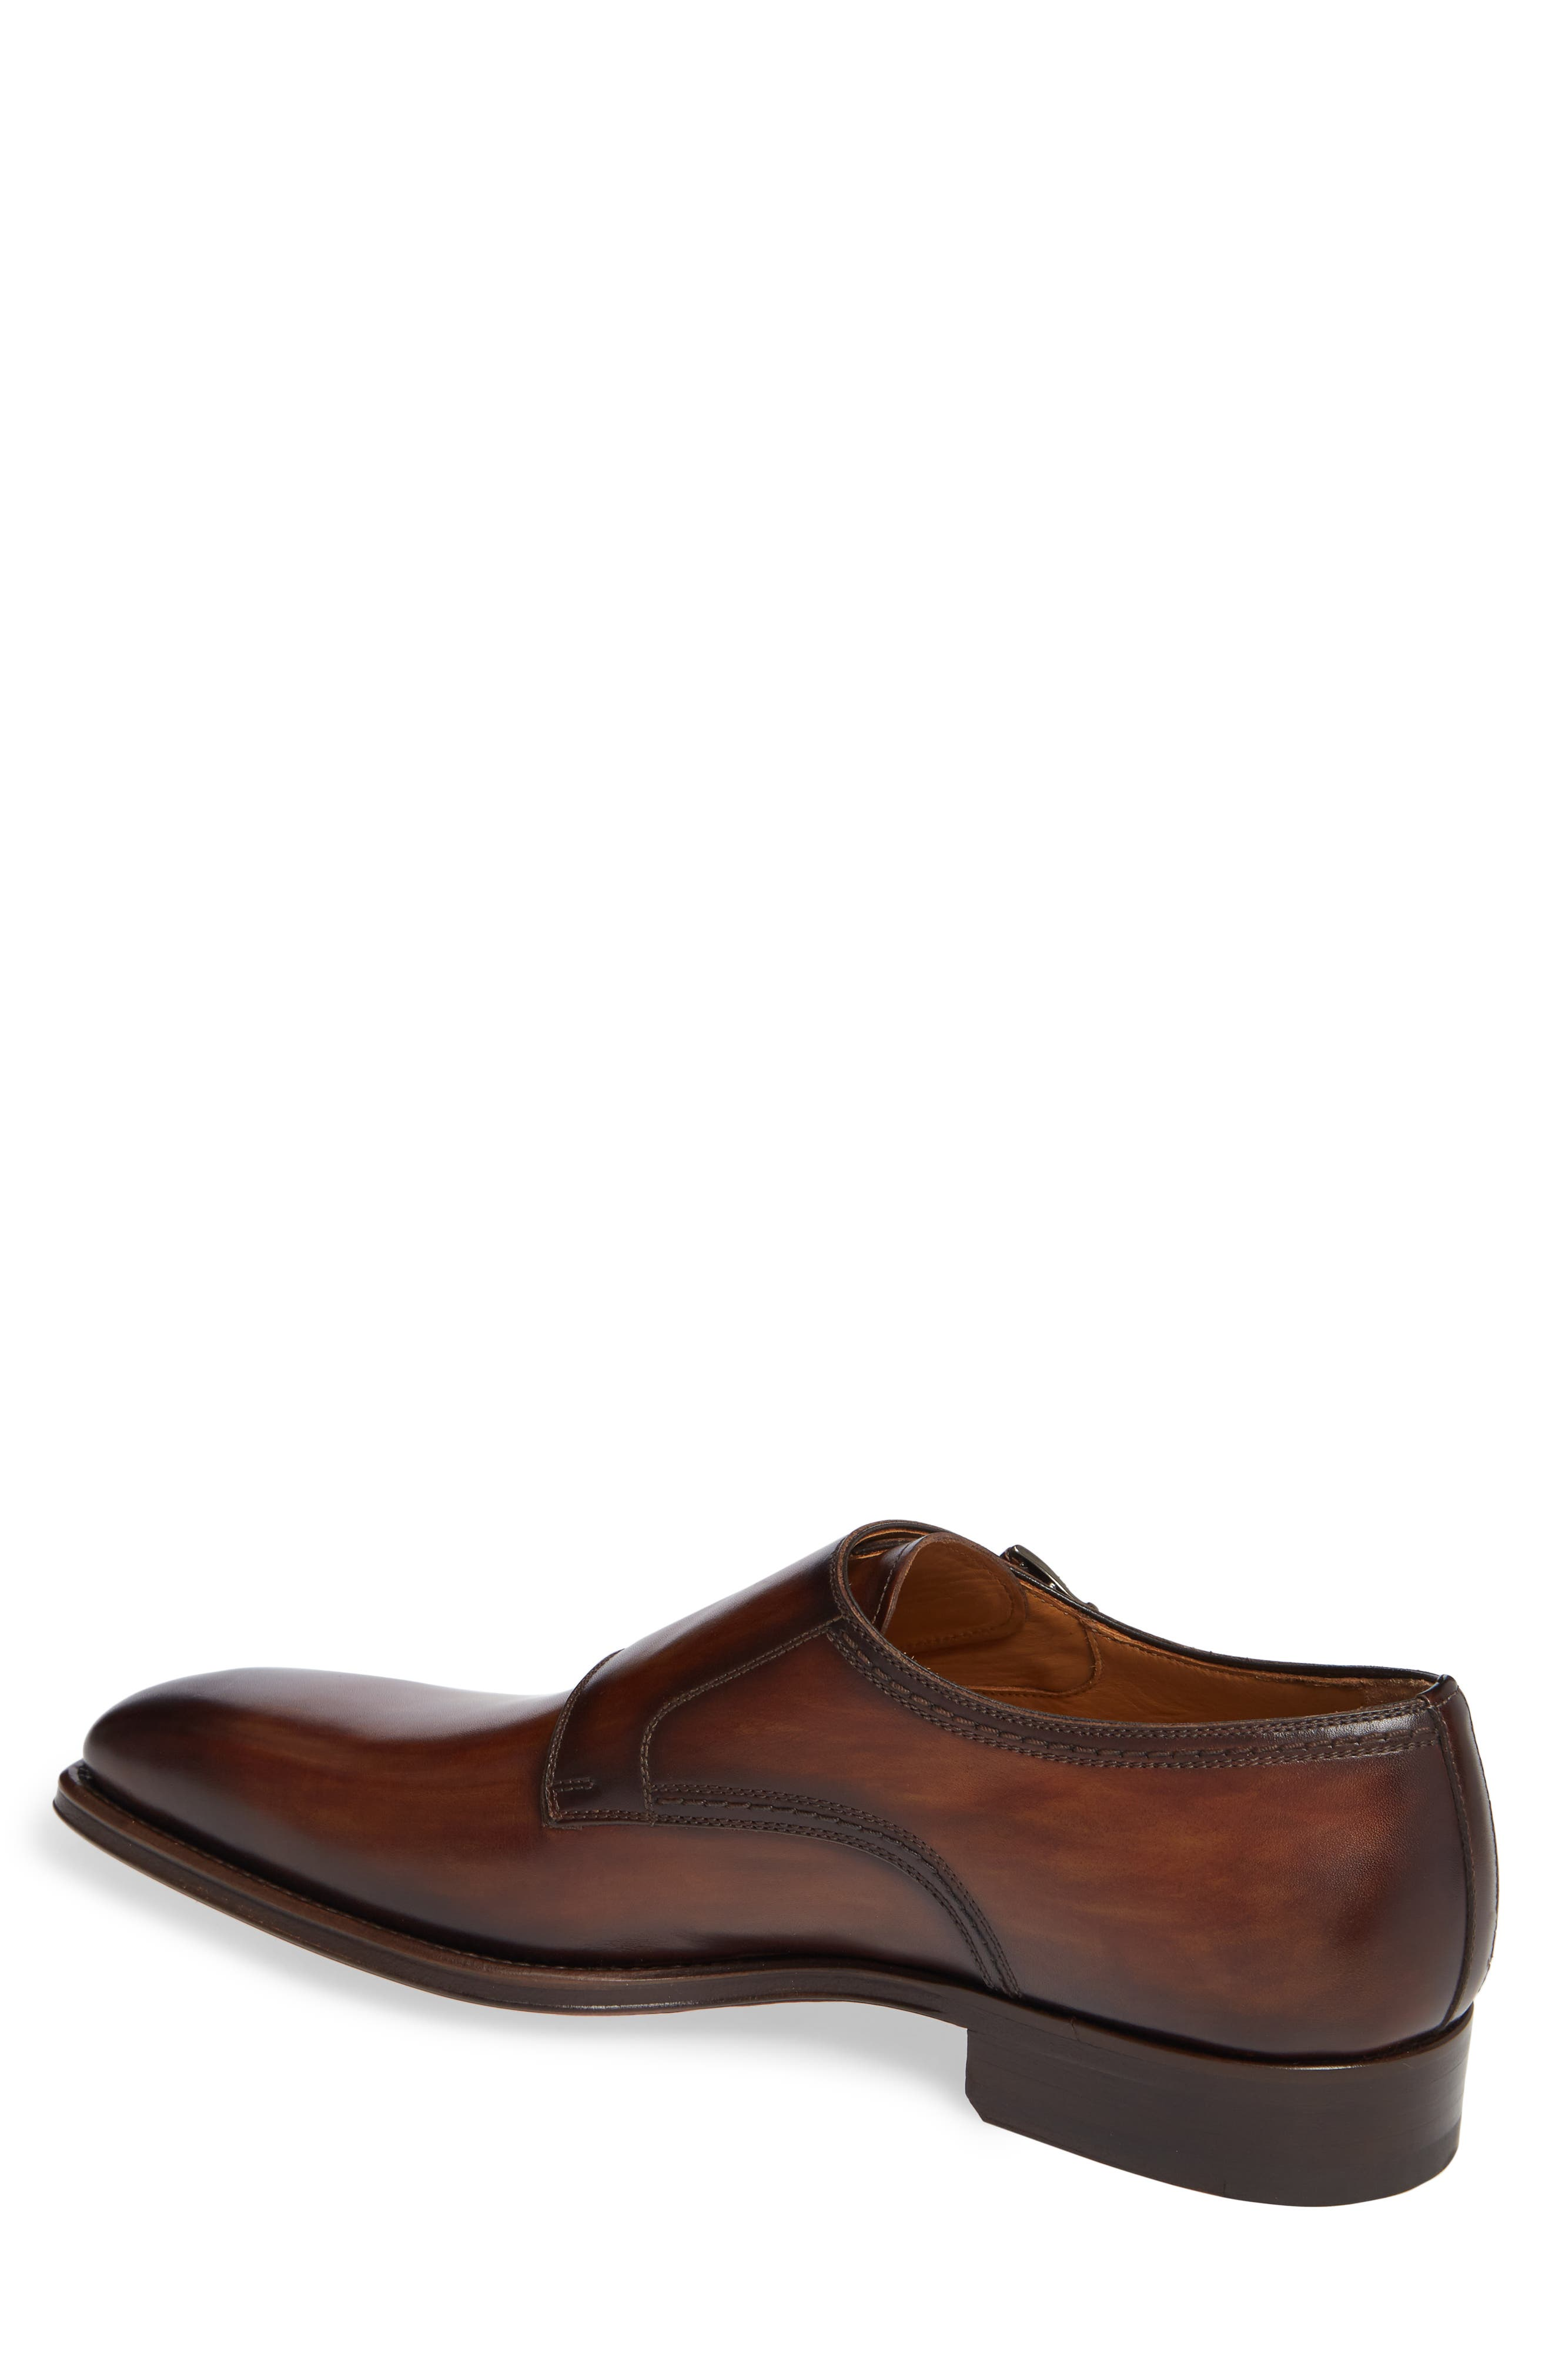 ,                             Landon Double Strap Monk Shoe,                             Alternate thumbnail 17, color,                             240